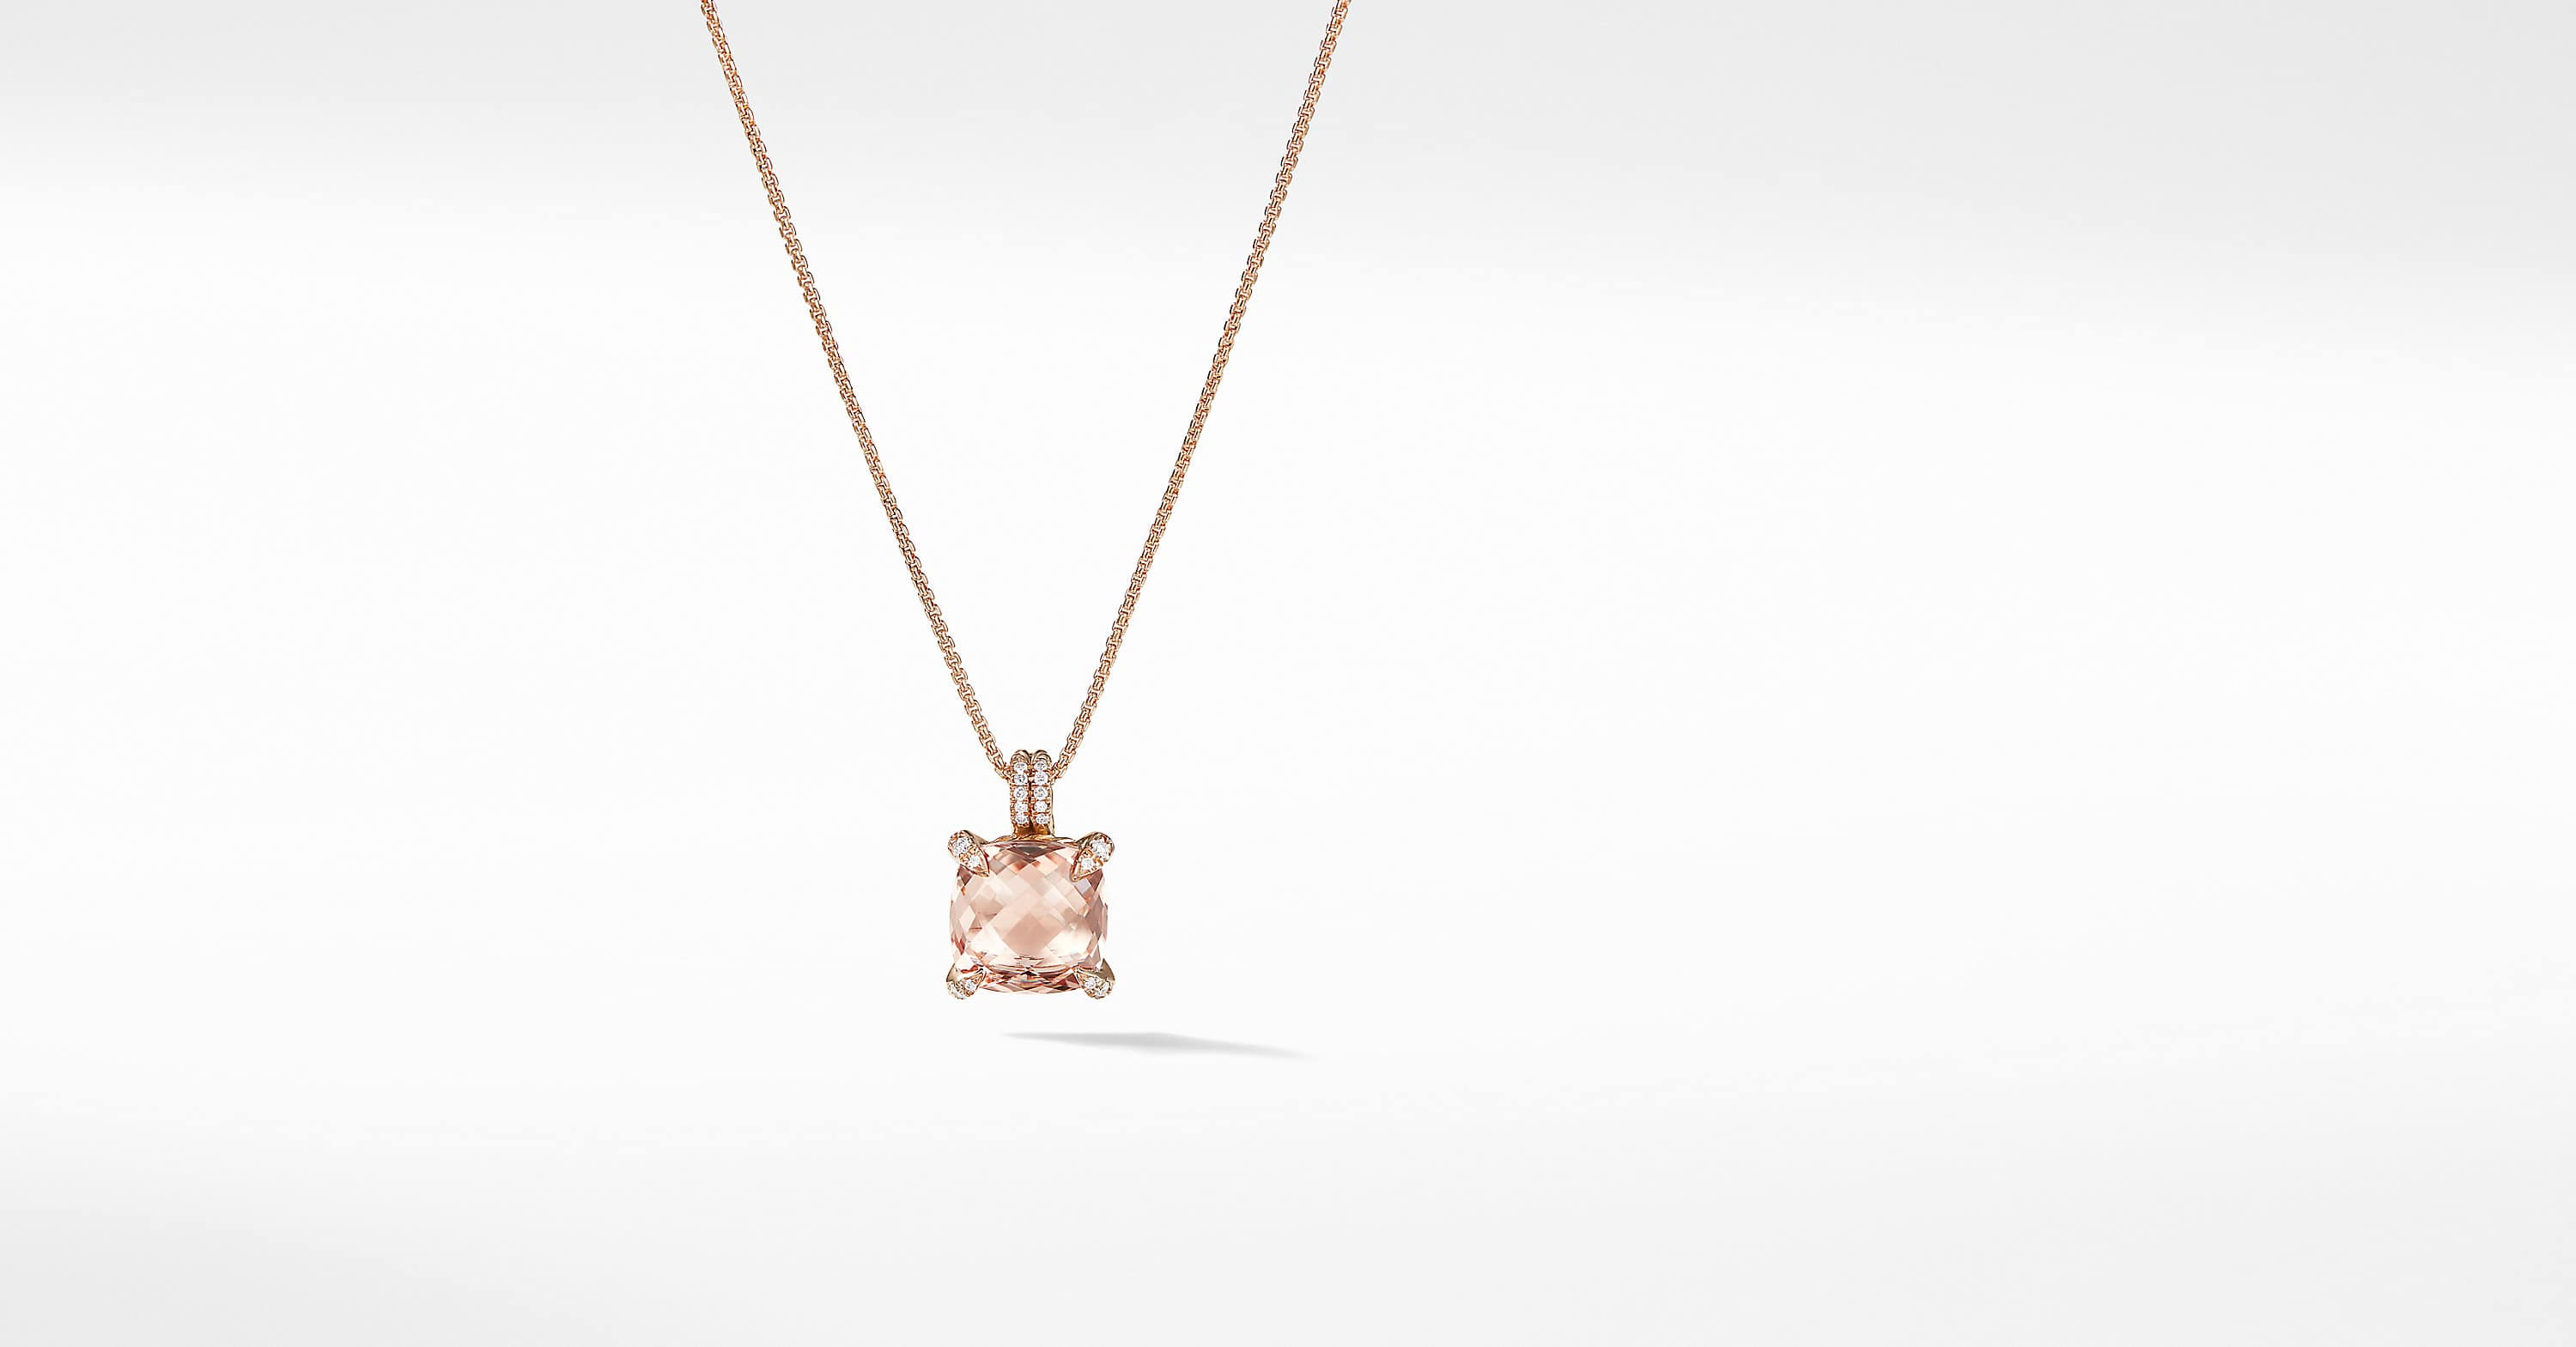 Chatelaine Pendant Necklace with Diamonds in 18K Rose Gold, 11mm